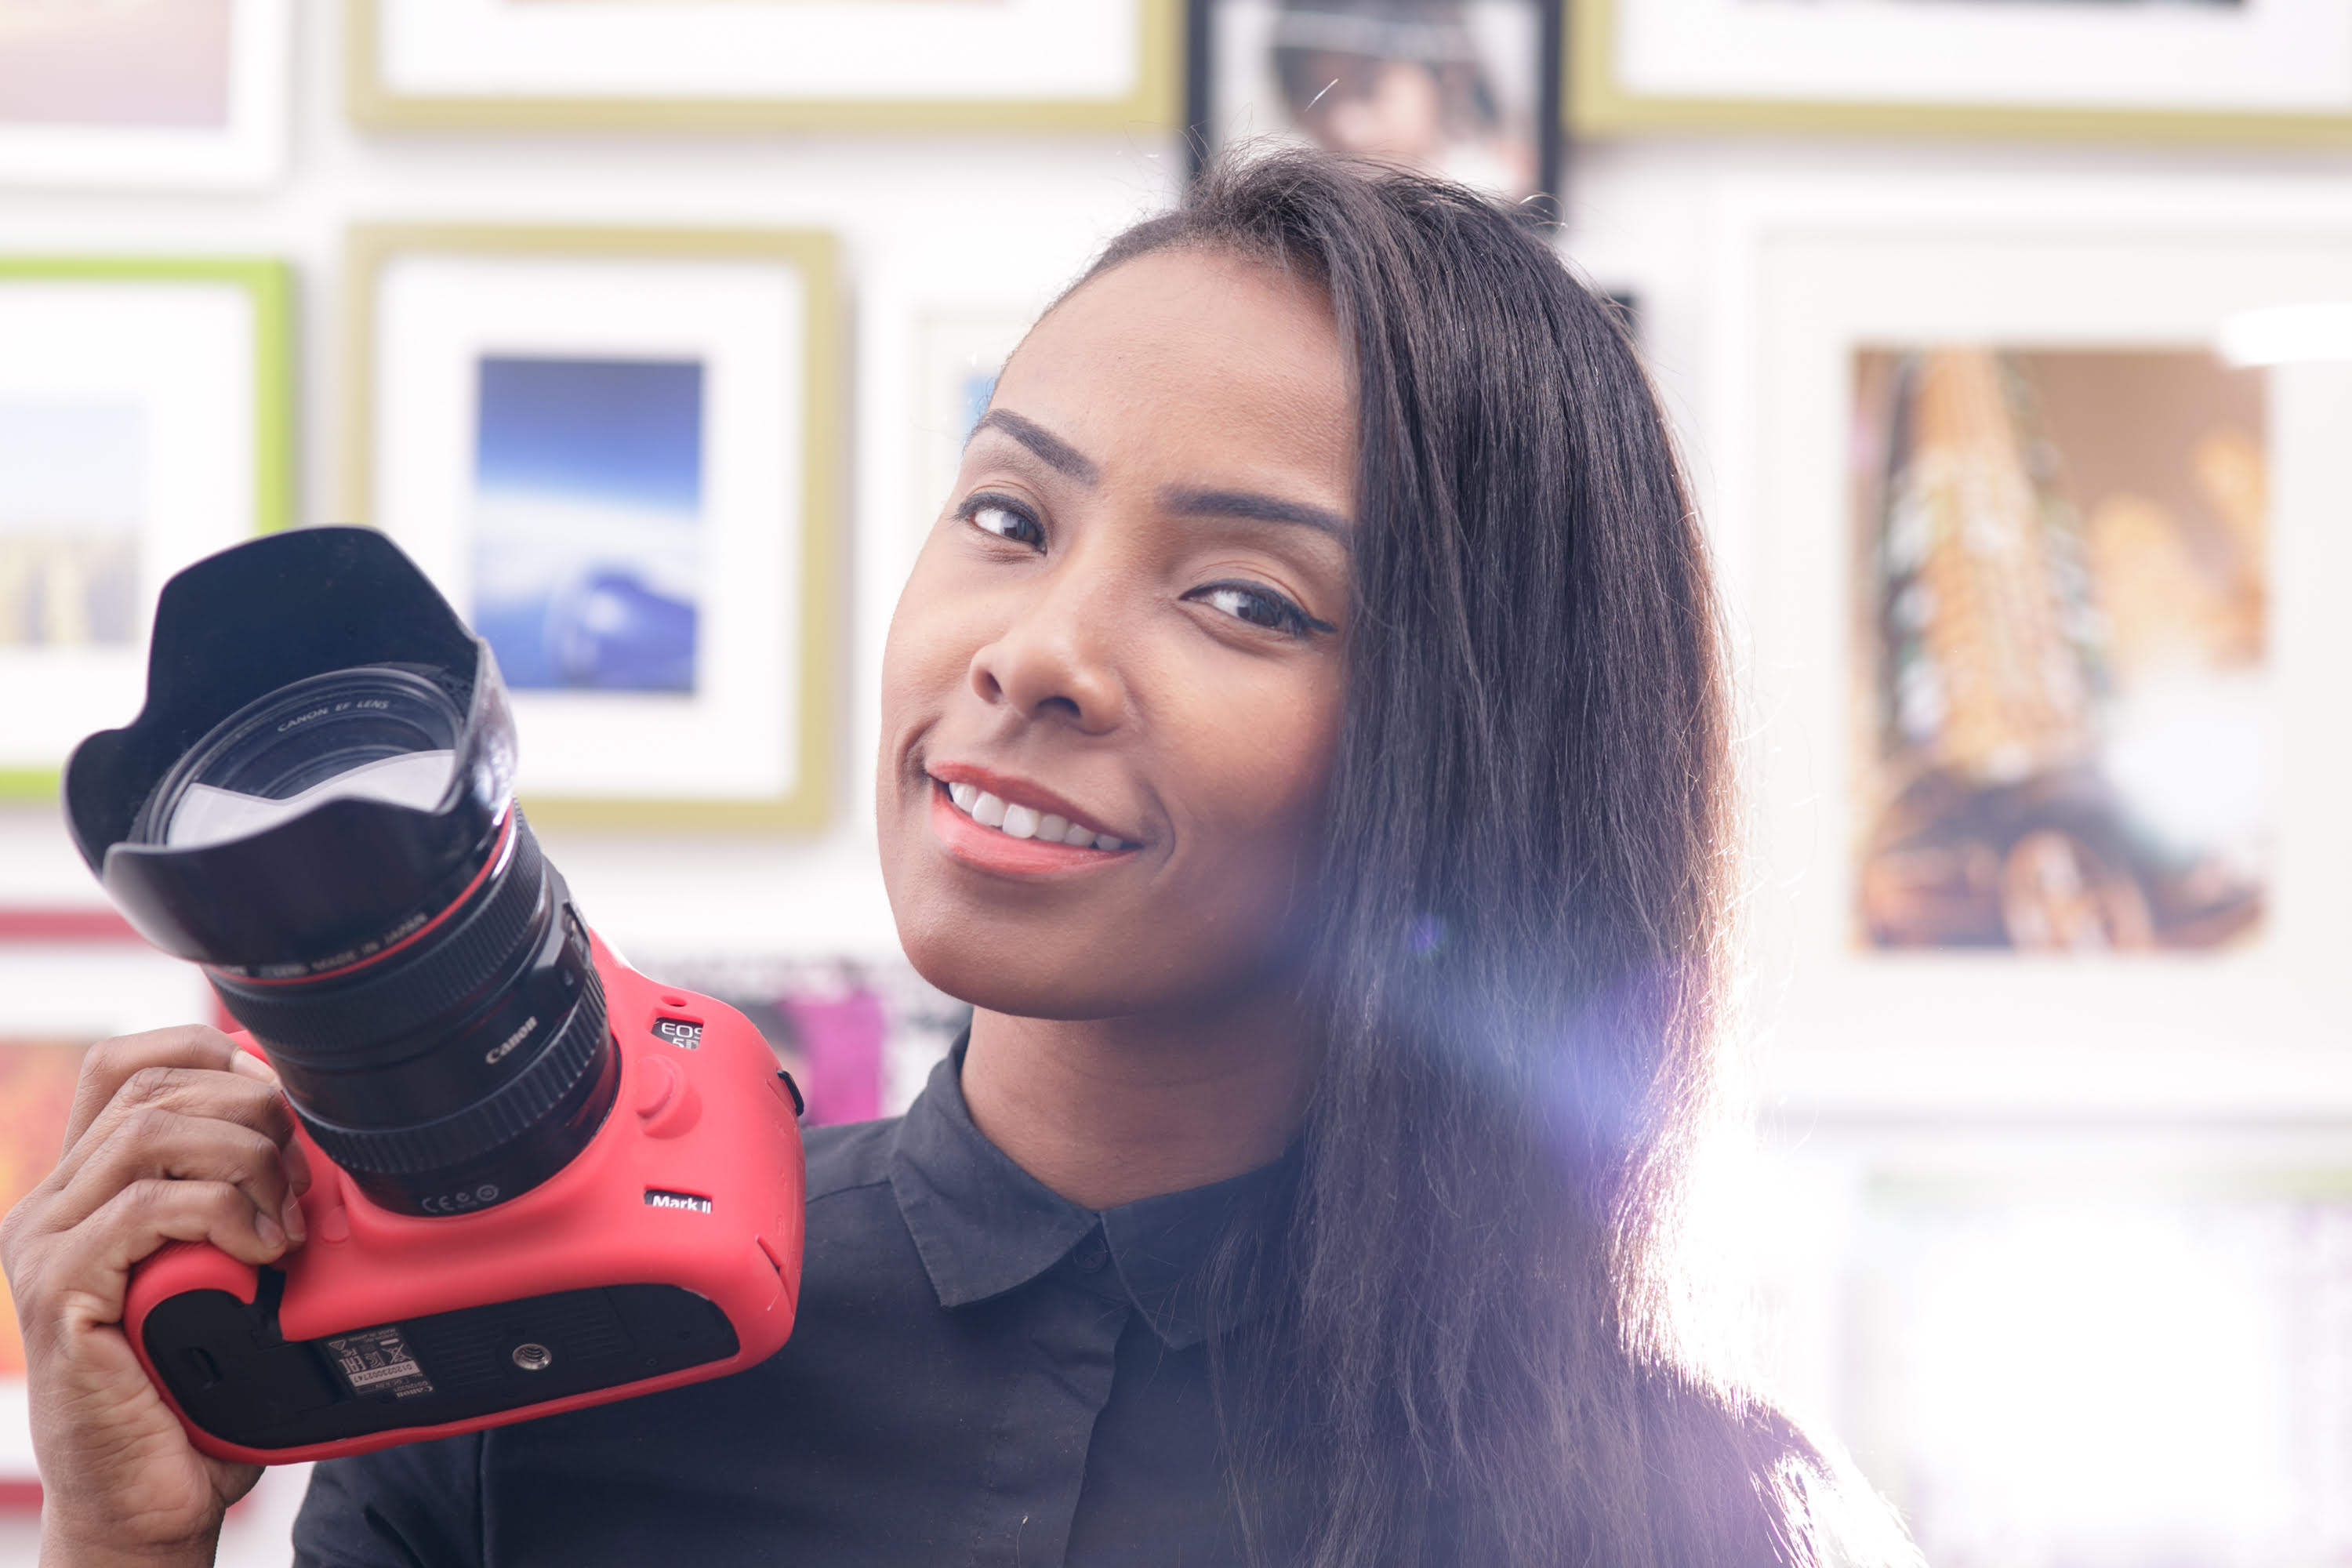 Top Birmingham photographer lined up for business award